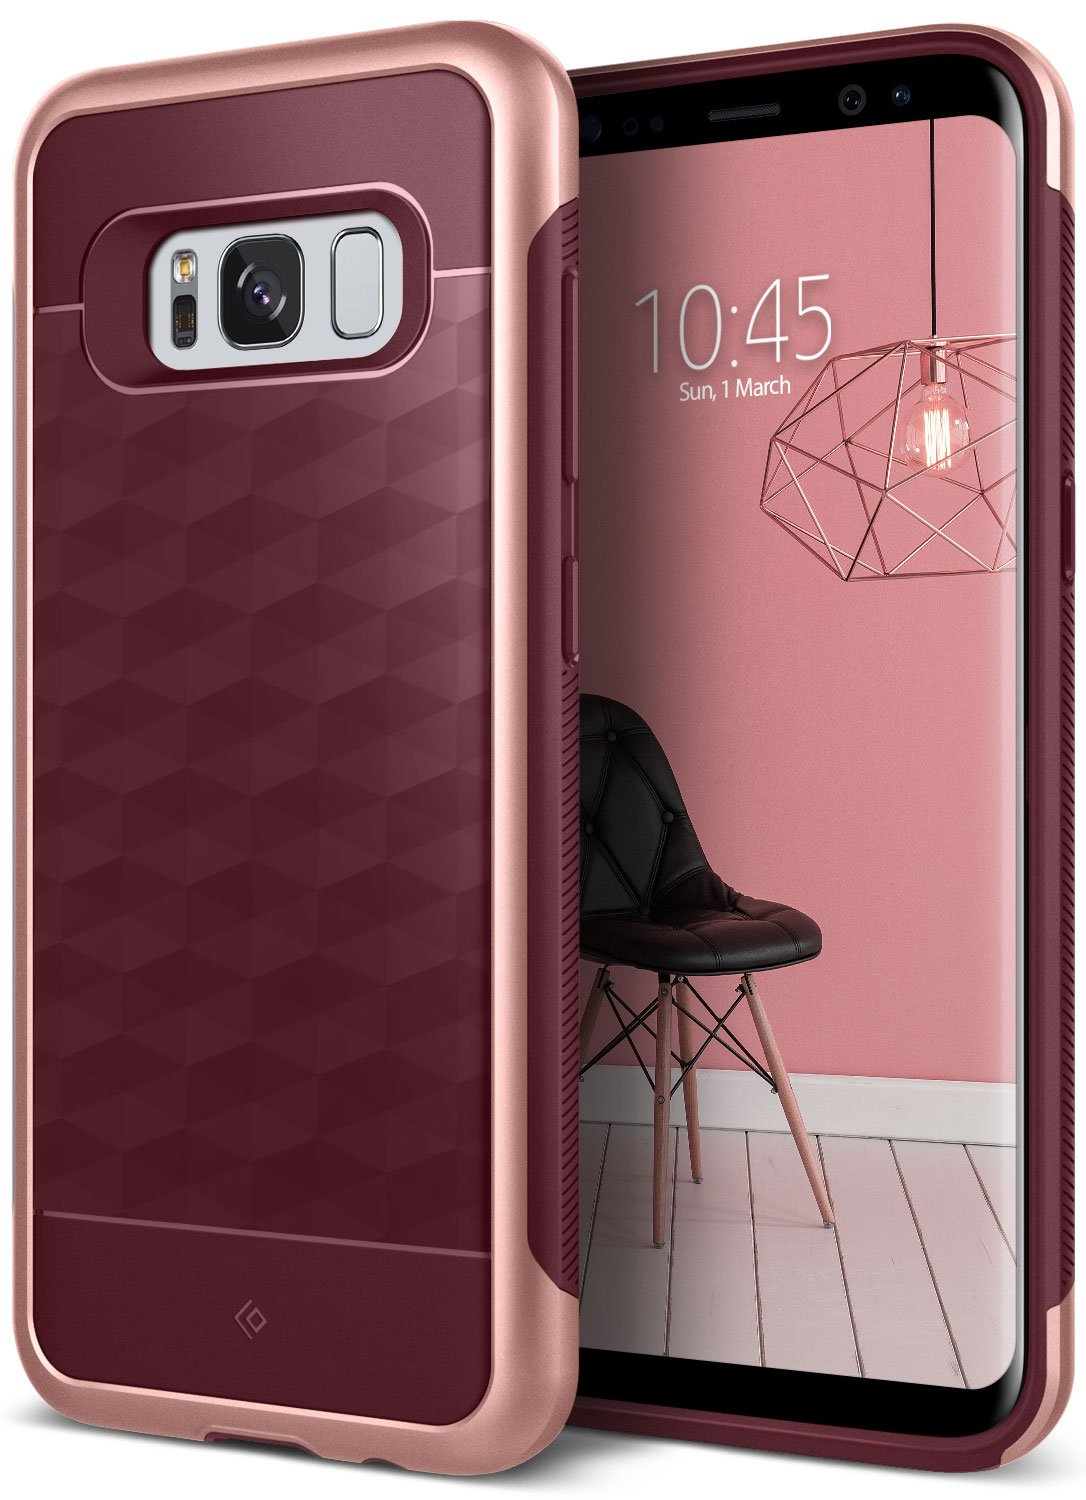 Galaxy S8 Case, Caseology [Parallax Series] Slim Dual Layer Protective Textured Geometric Cover Corner Cushion Design for Samsung Galaxy S8 (2017) - Burgundy